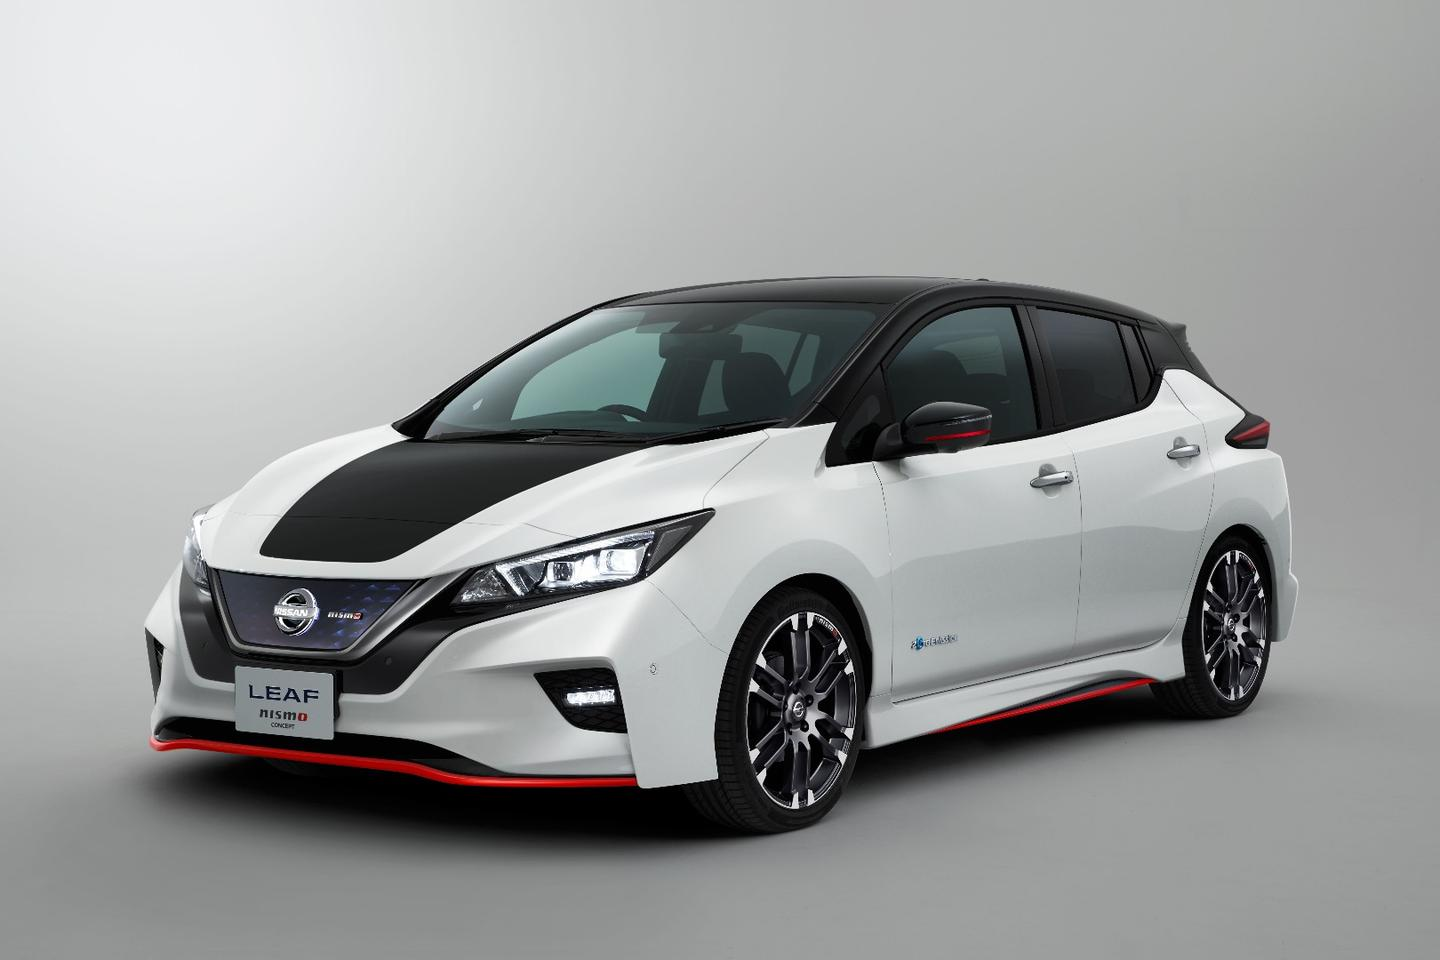 Anumber of external, interior, and internal changes to the Nissan Leaf are showcased on the Nismo Concept to be shown at the upcoming Tokyo Motor Show